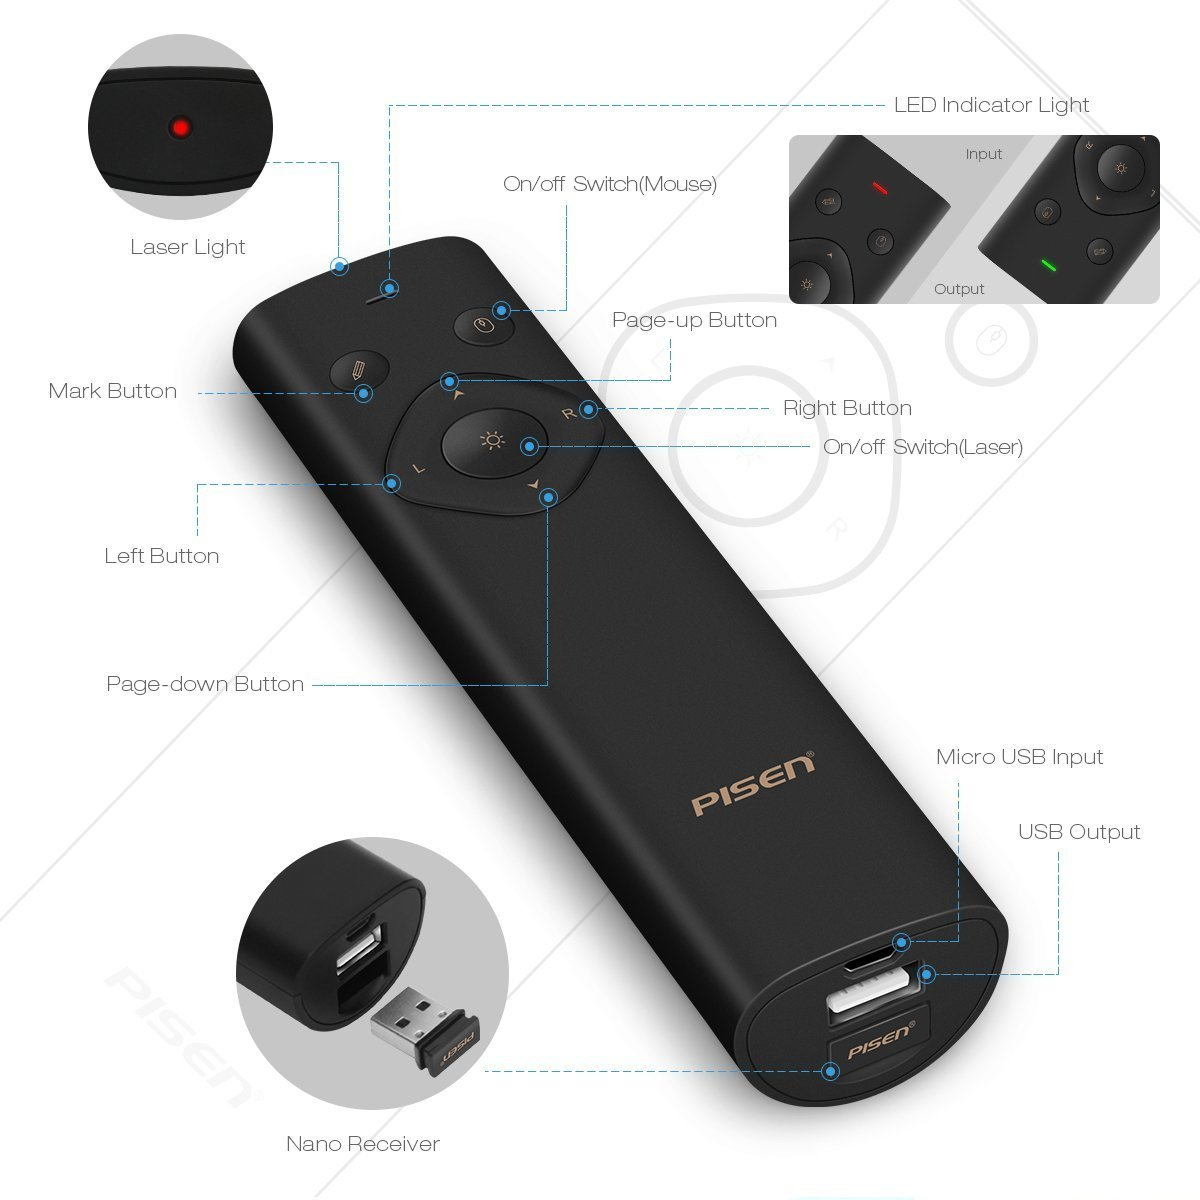 Presentation Remote, PISEN Pointer Presenter Rechargable 2.4GHz PPT Clicker, Multi-Function Fly Mouse 2500mAh Power Bank Wireless Presenter Remote for Computer, MacBook, Projector (Black) by PISEN (Image #4)